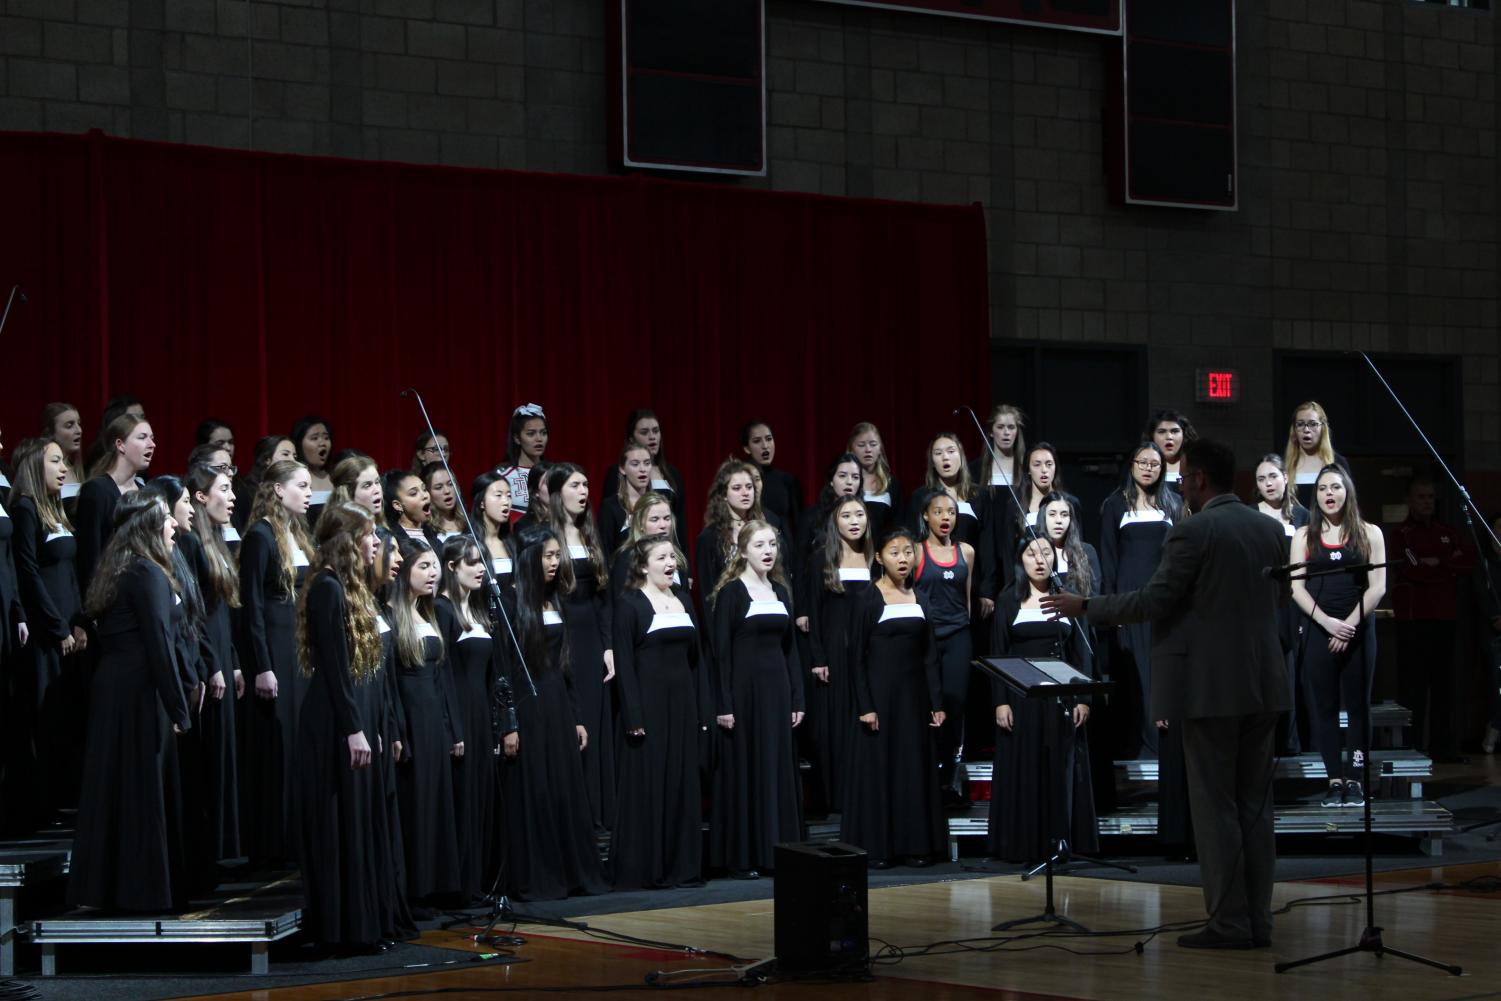 Bel+Canto+performs+their+fall+song+at+the+showcase.+%22It%E2%80%99s+kind+of+like+an+ethereal+feeling%2C%22+senior+Angelina+Phu+said.+%22It%27s+like+you%27re+up+there+%5Bwith%5D+the+lights+and+everything+that+you%E2%80%99ve+worked+on+from+rehearsals%2C+to+practicing+at+home+to+practicing+with+your+friends+and+every+single+hour+of+it+culminates+up+to+this+moment+and+honestly+it+is+breathtaking.+And+kind+of+just+lose+yourself+in+the+moment.%E2%80%9D